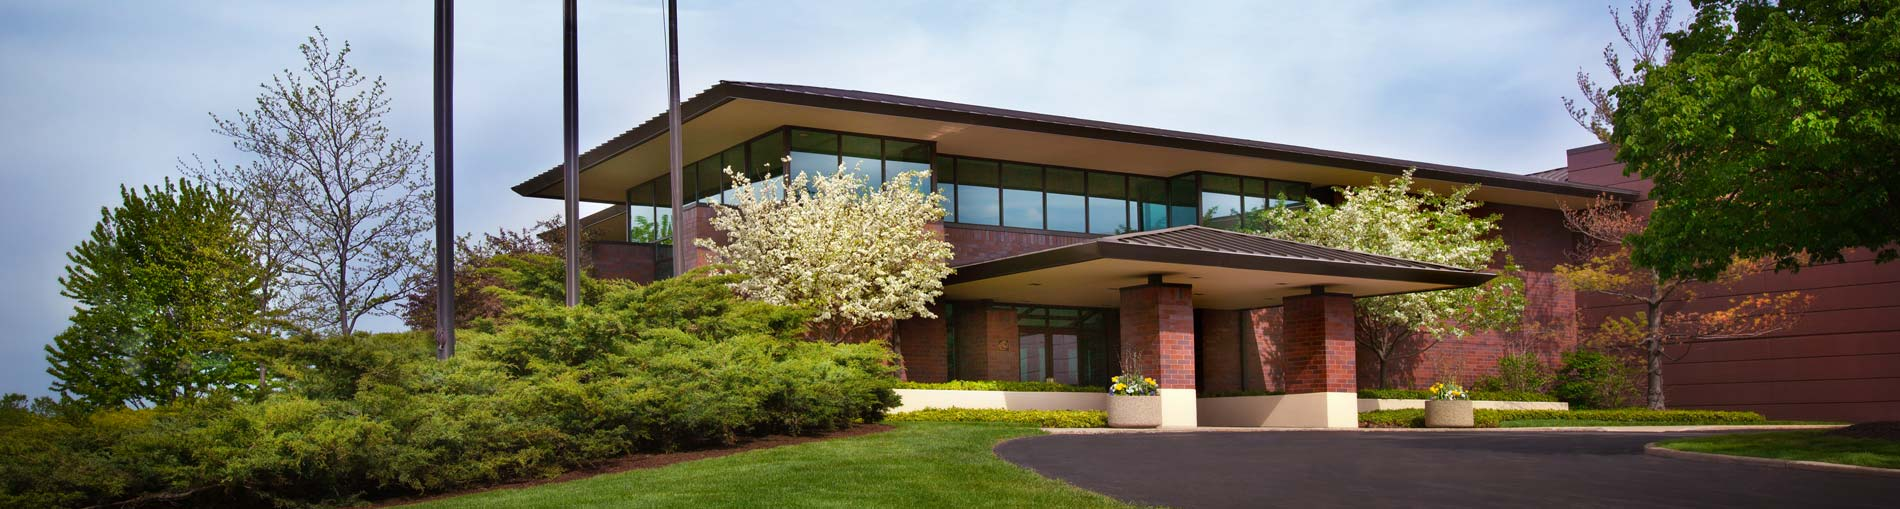 Paper Machinery Corporation's corporate headquarters and manufacturing facility is located in Milwaukee, Wisconsin, U.S.A.